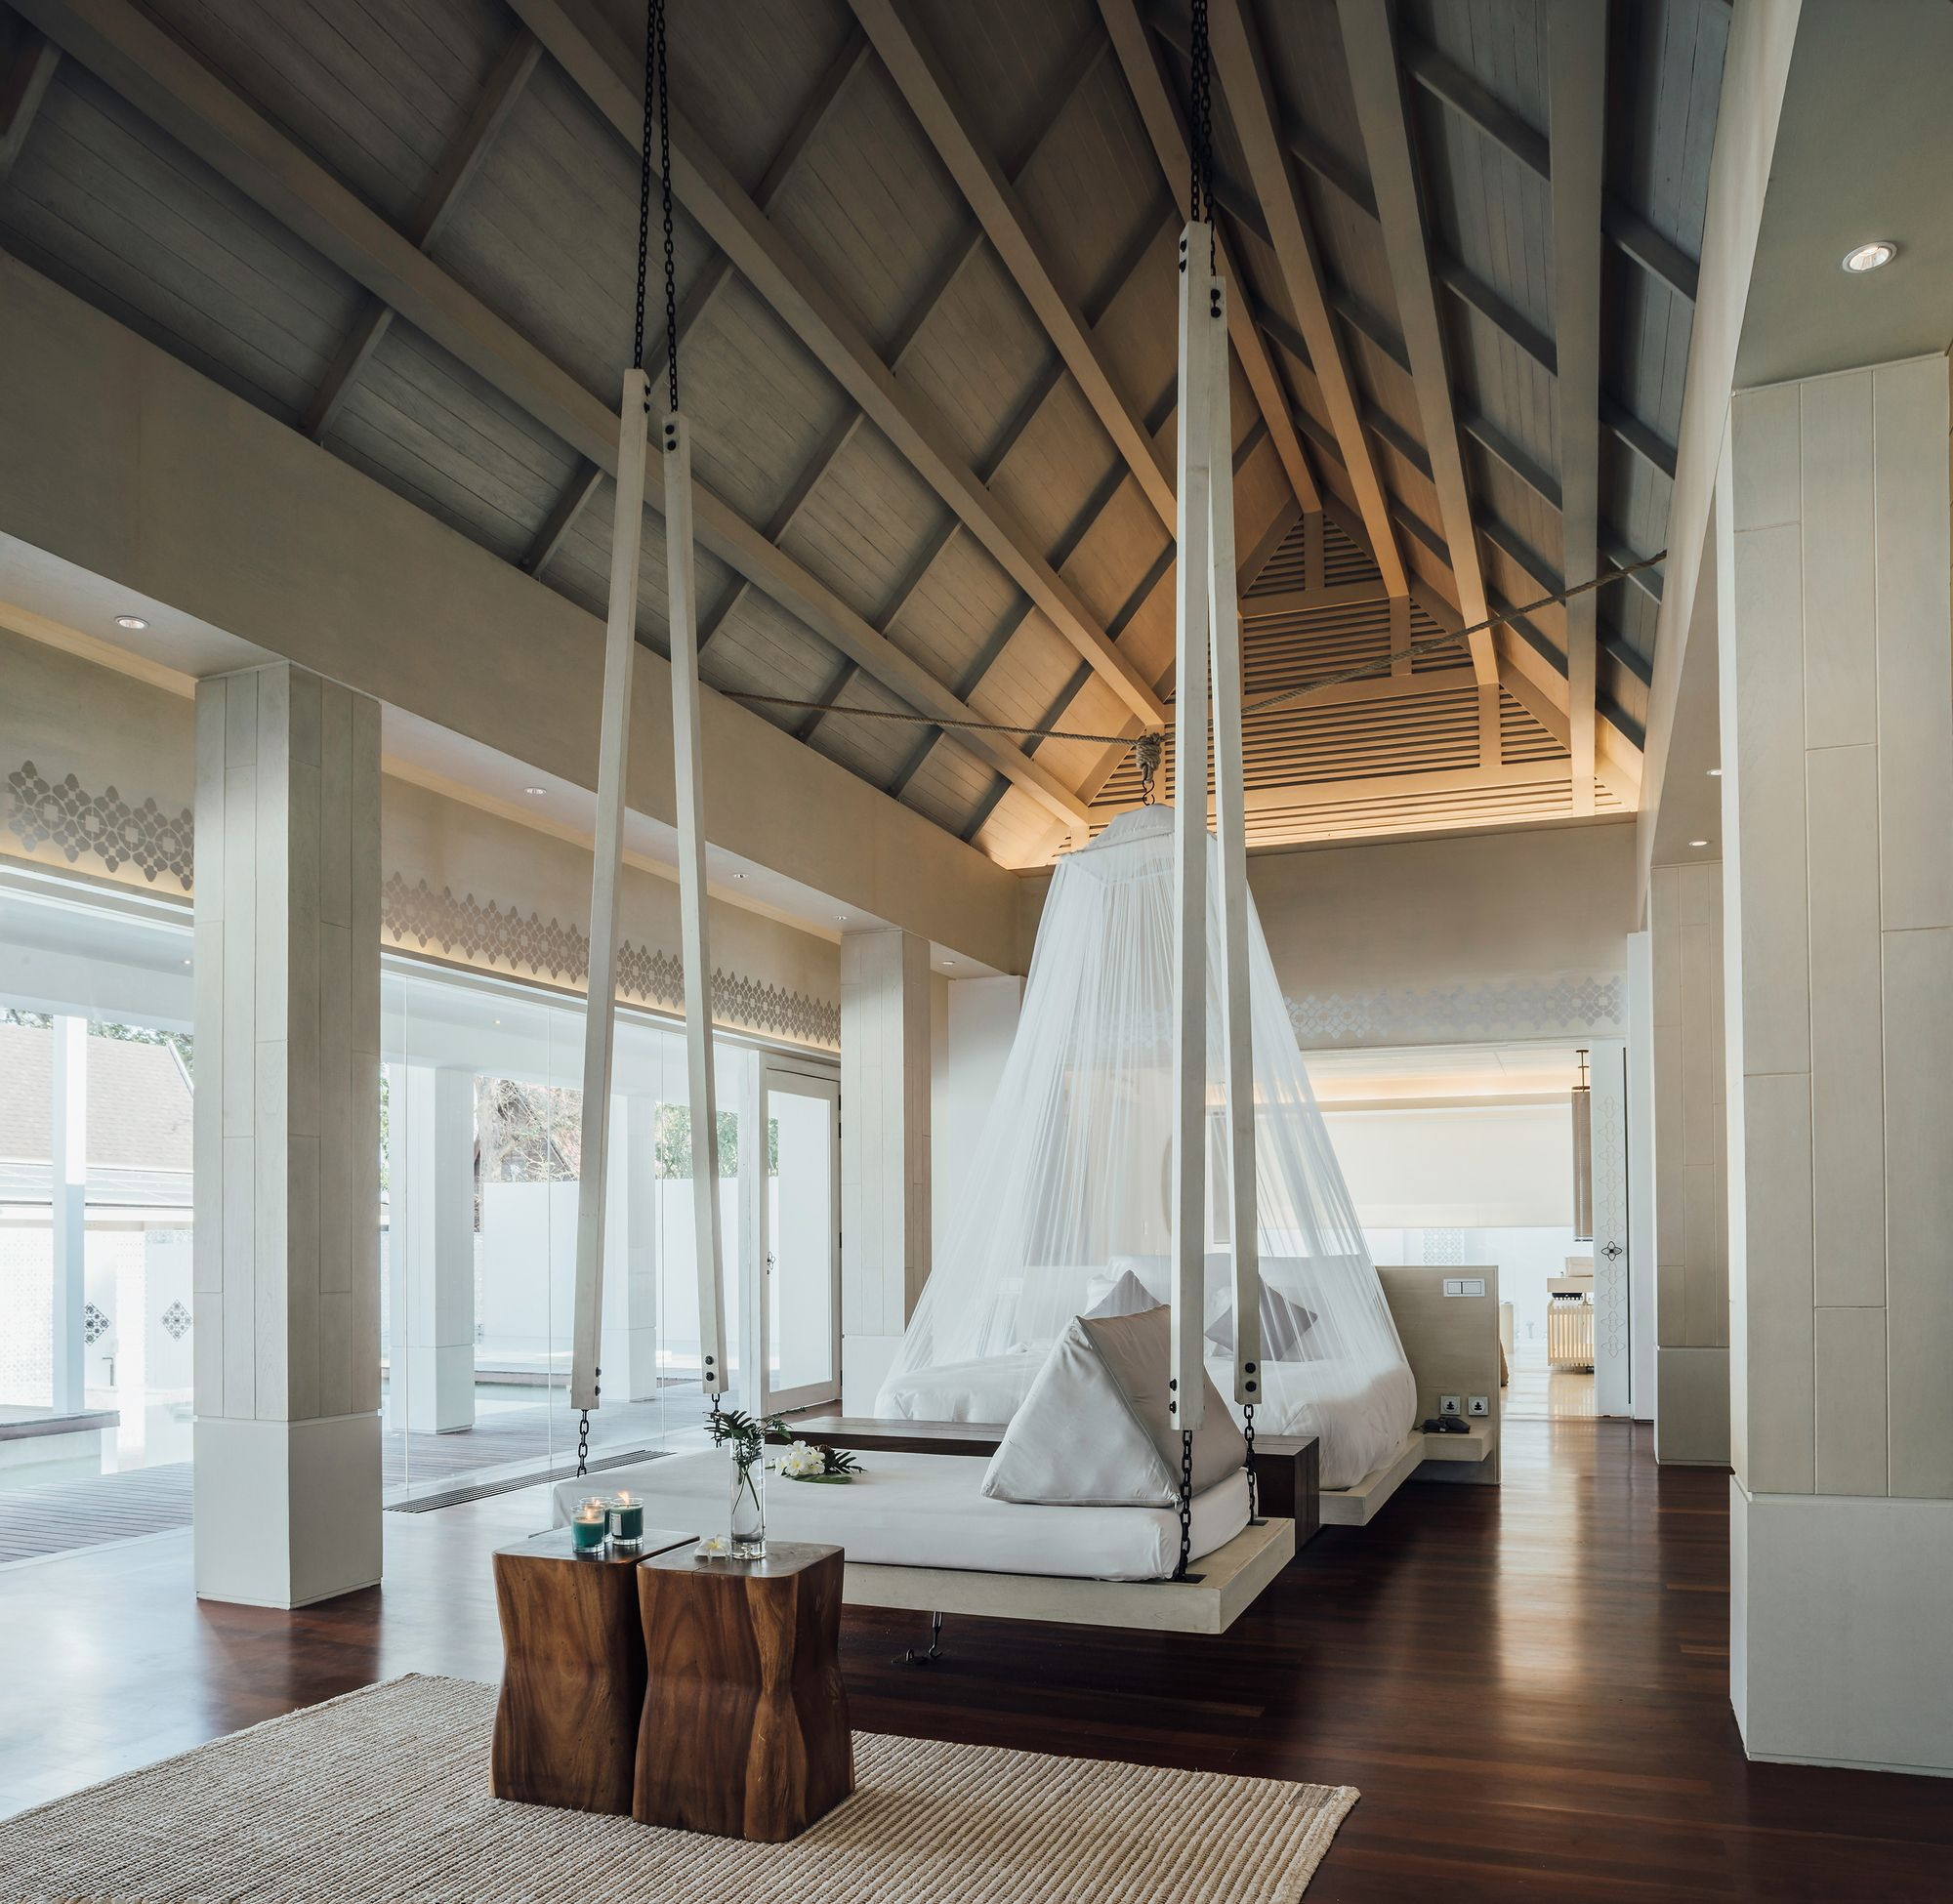 Honeymoon Private Island Presidential Suite / Architects 49